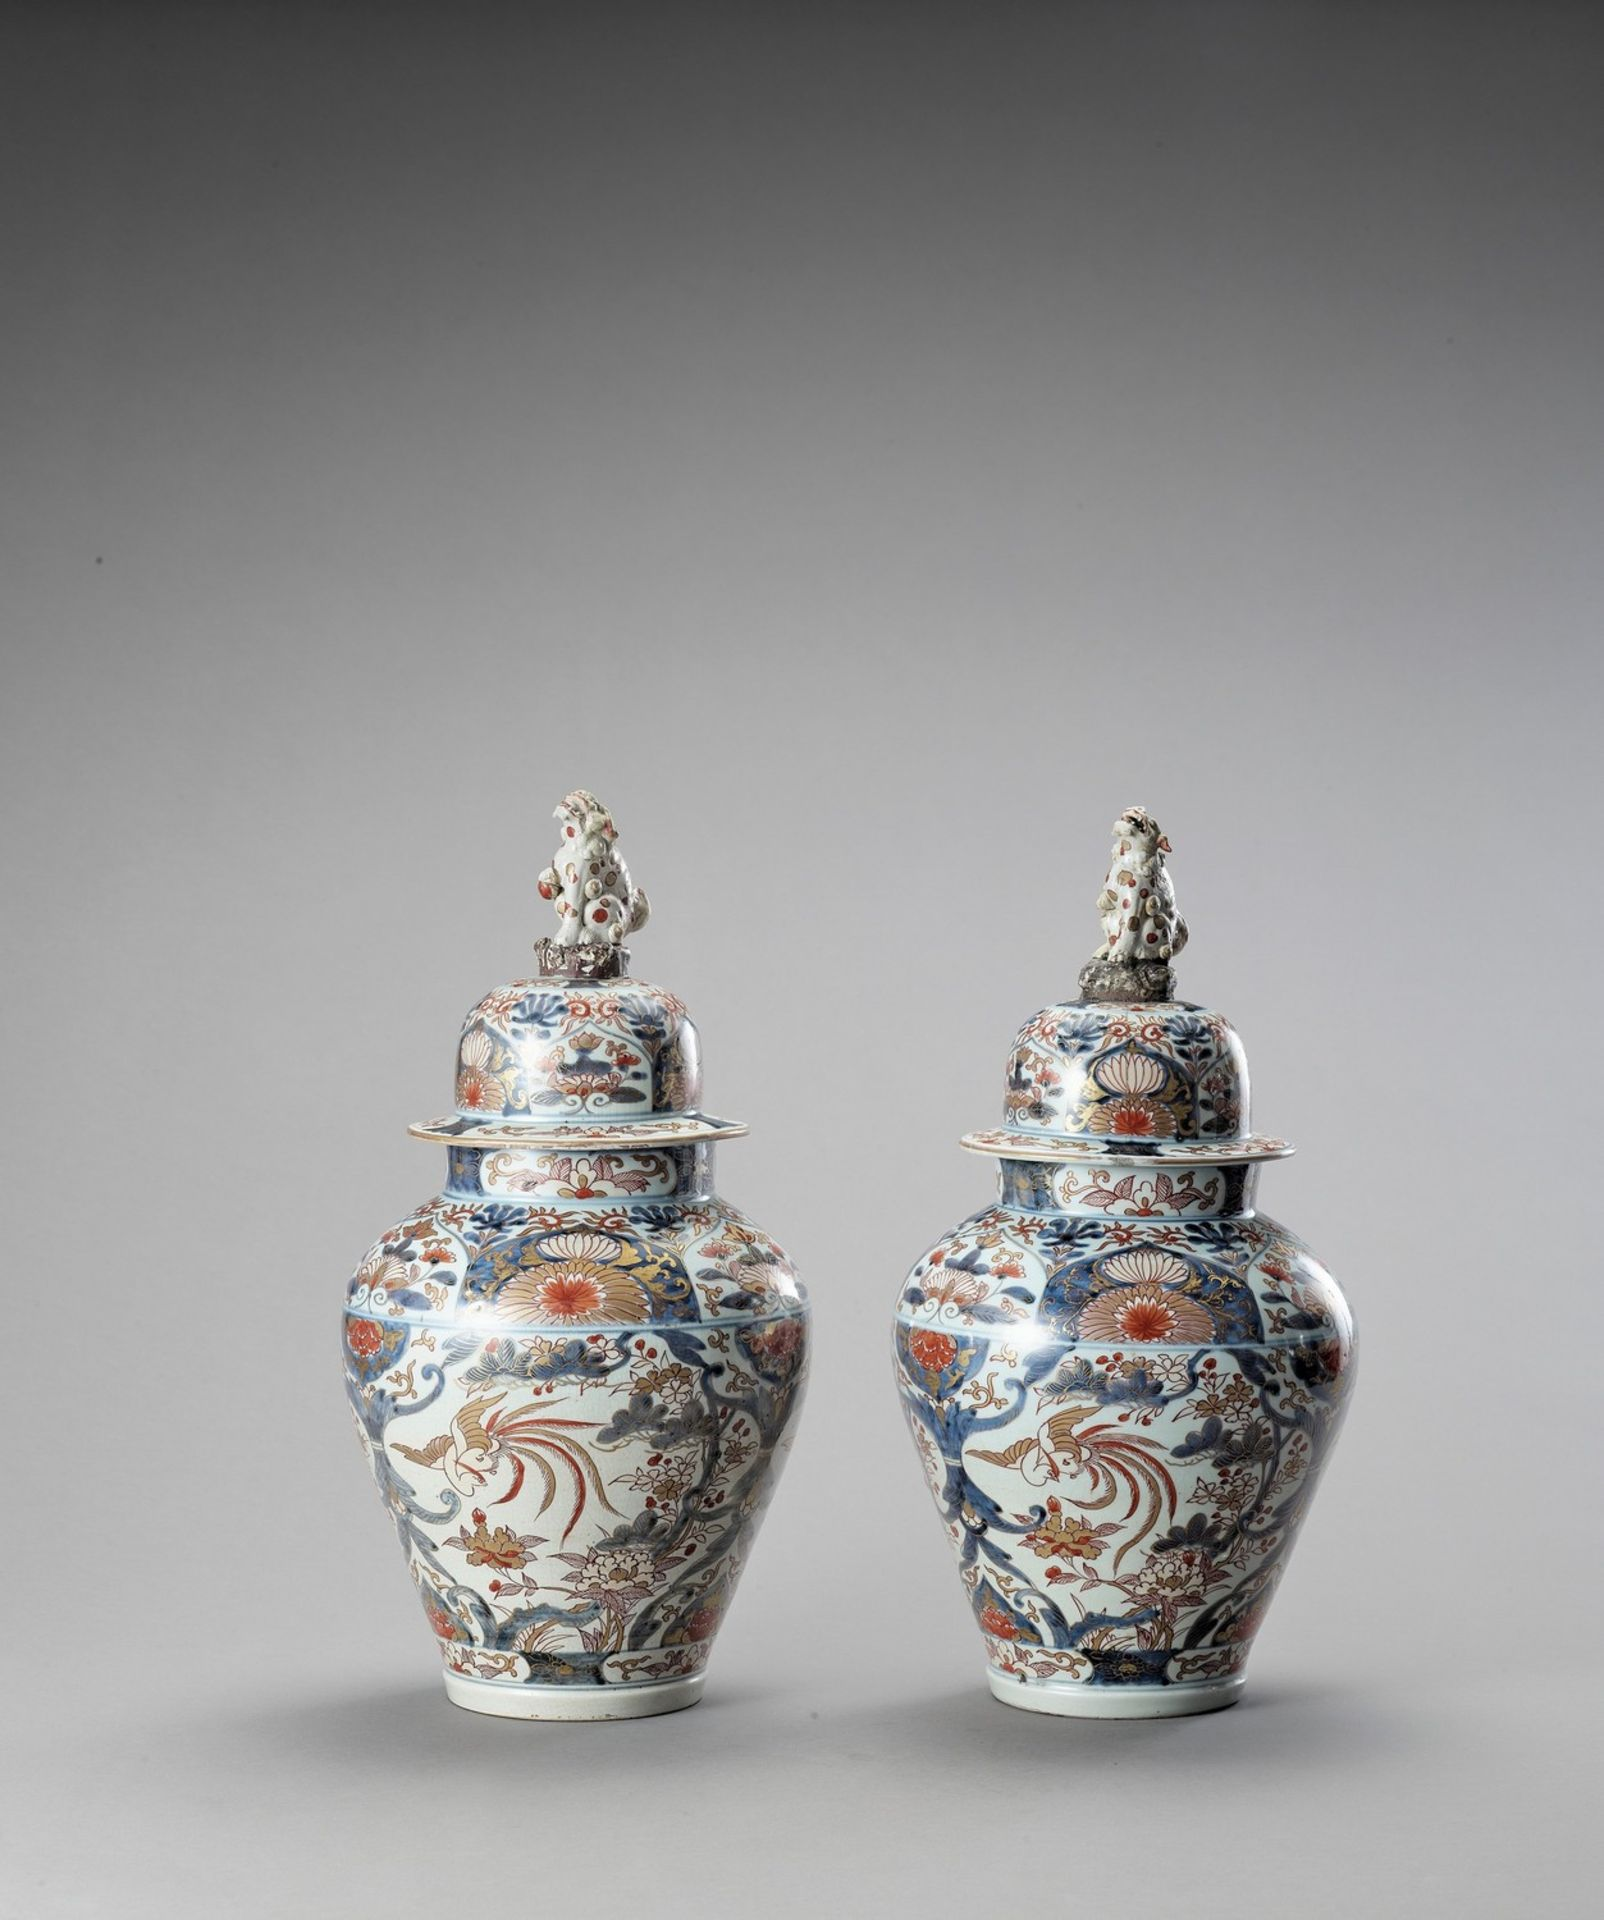 A LARGE PAIR OF IMARI PORCELAIN VASES AND COVERS